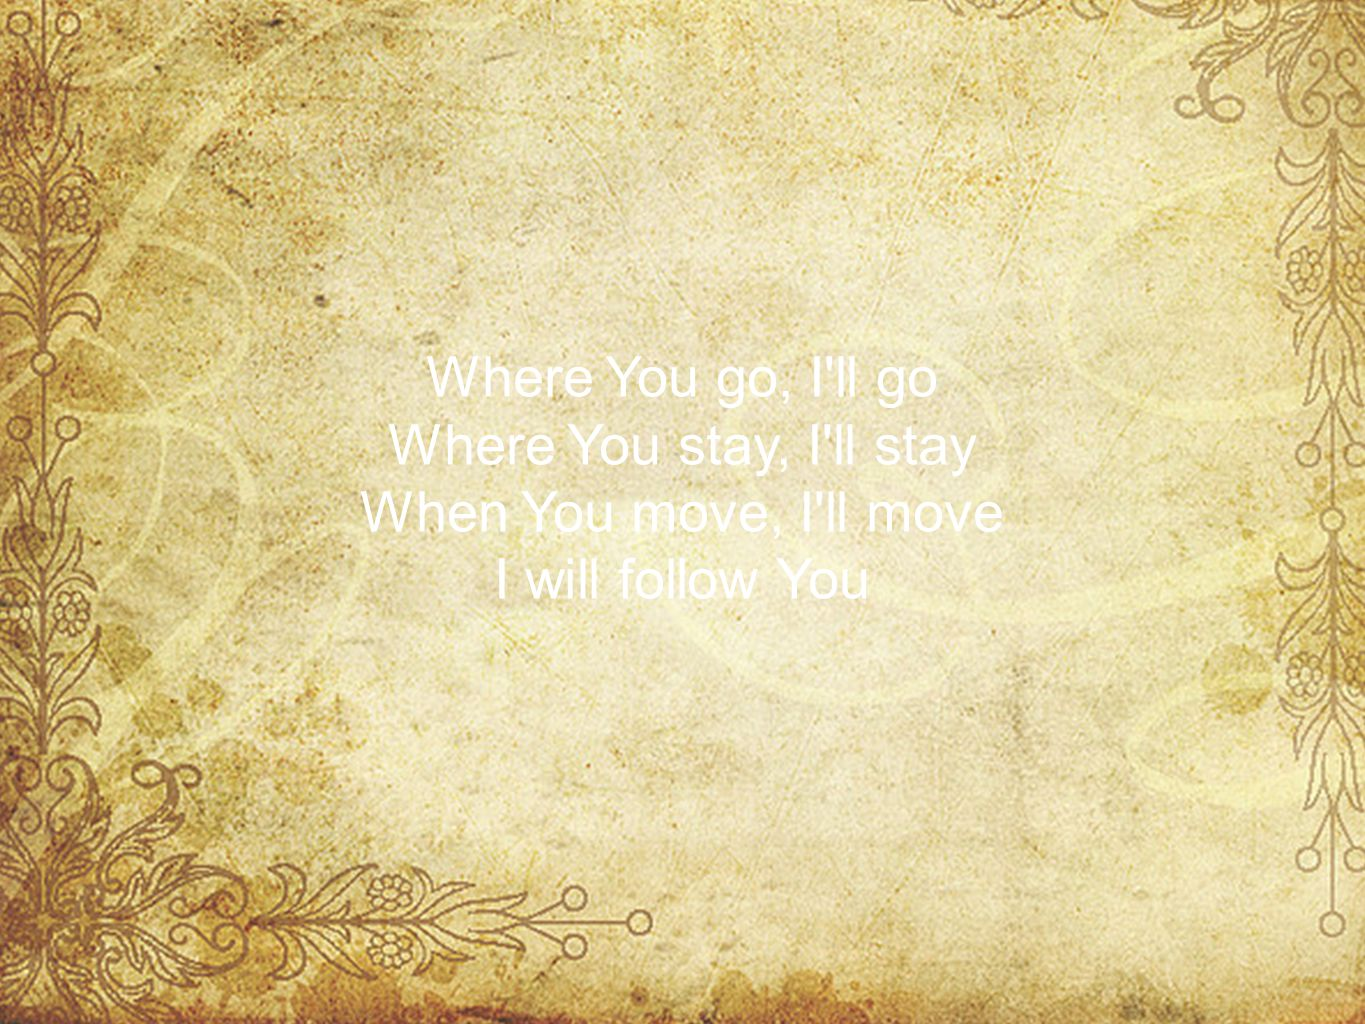 Where You go, I ll go Where You stay, I ll stay When You move, I ll move I will follow You